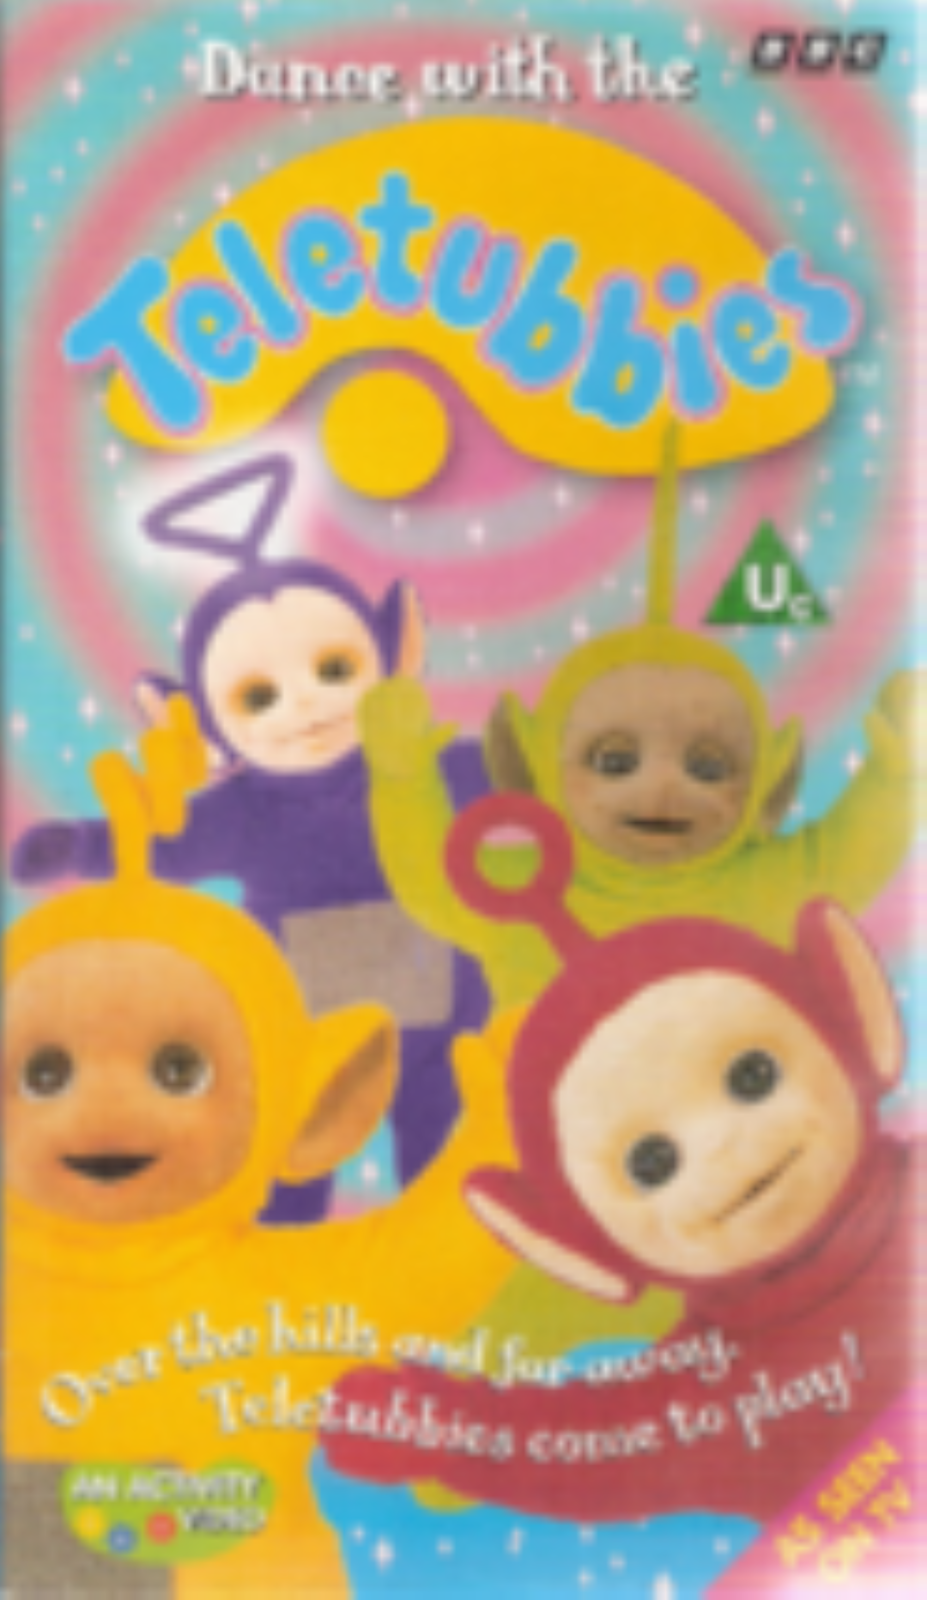 Teletubbies: Dance with the Teletubbies Vhs